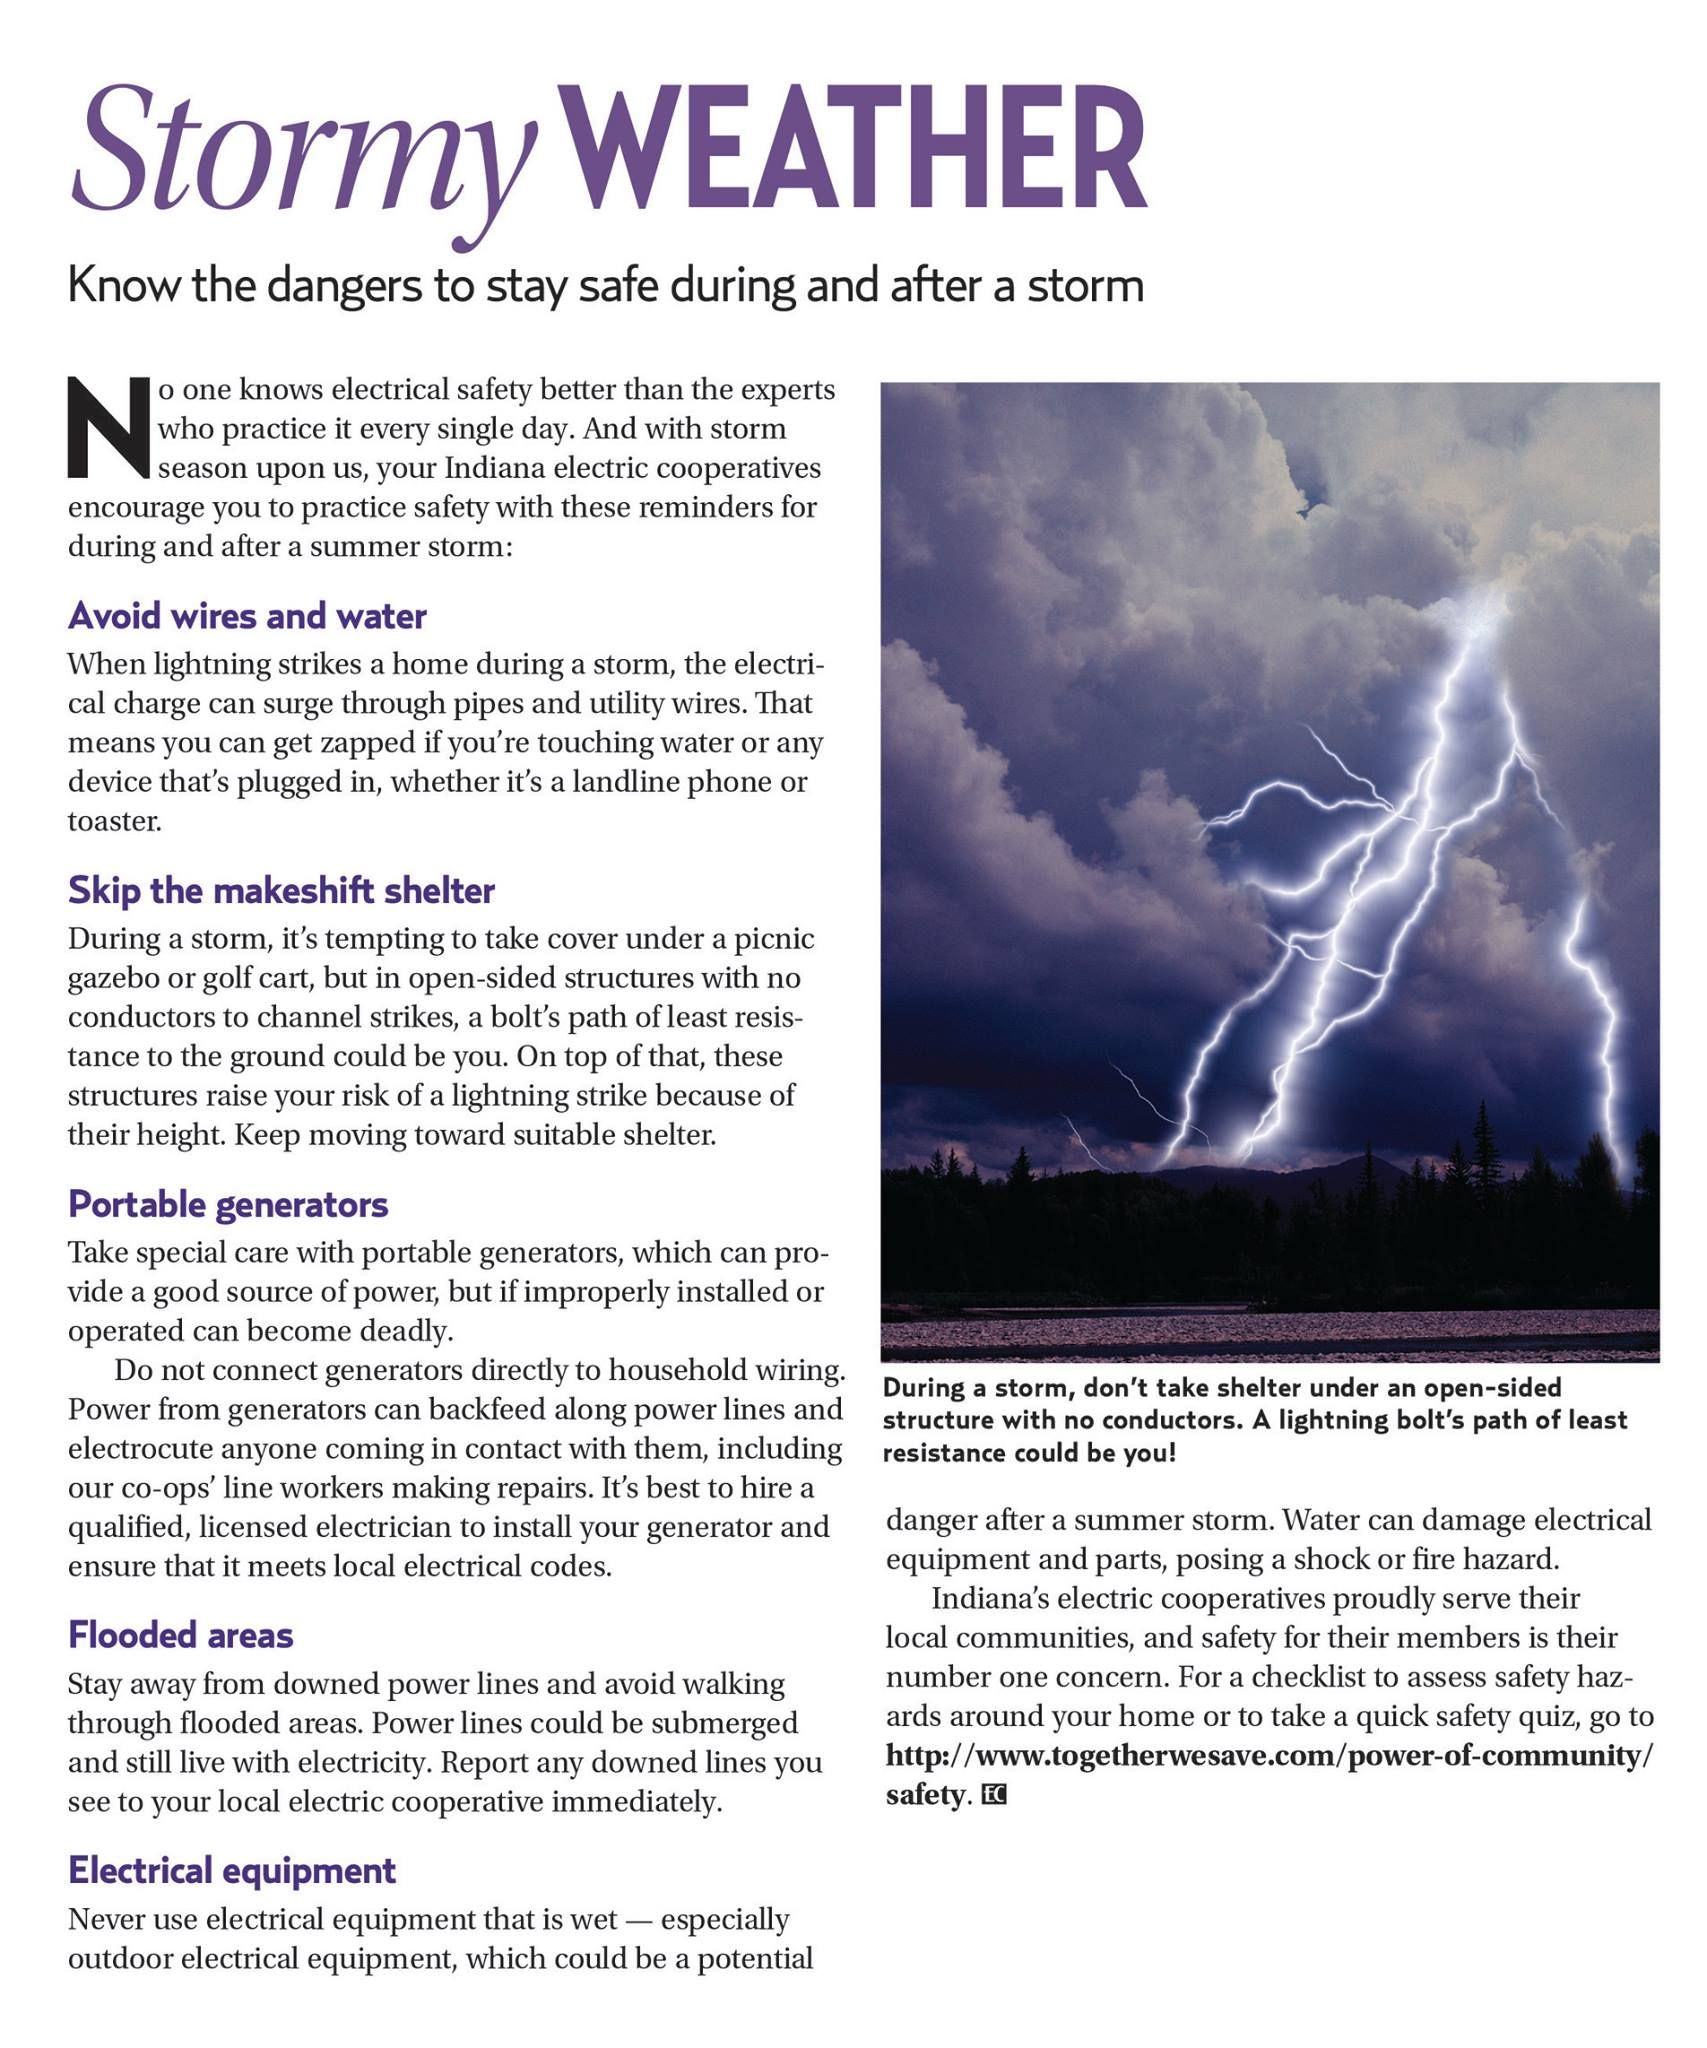 With Storms Lurking Know The Dangers To Stay Safe During And After Discuss About Home Wiring Hazards Electrical In Your A Storm